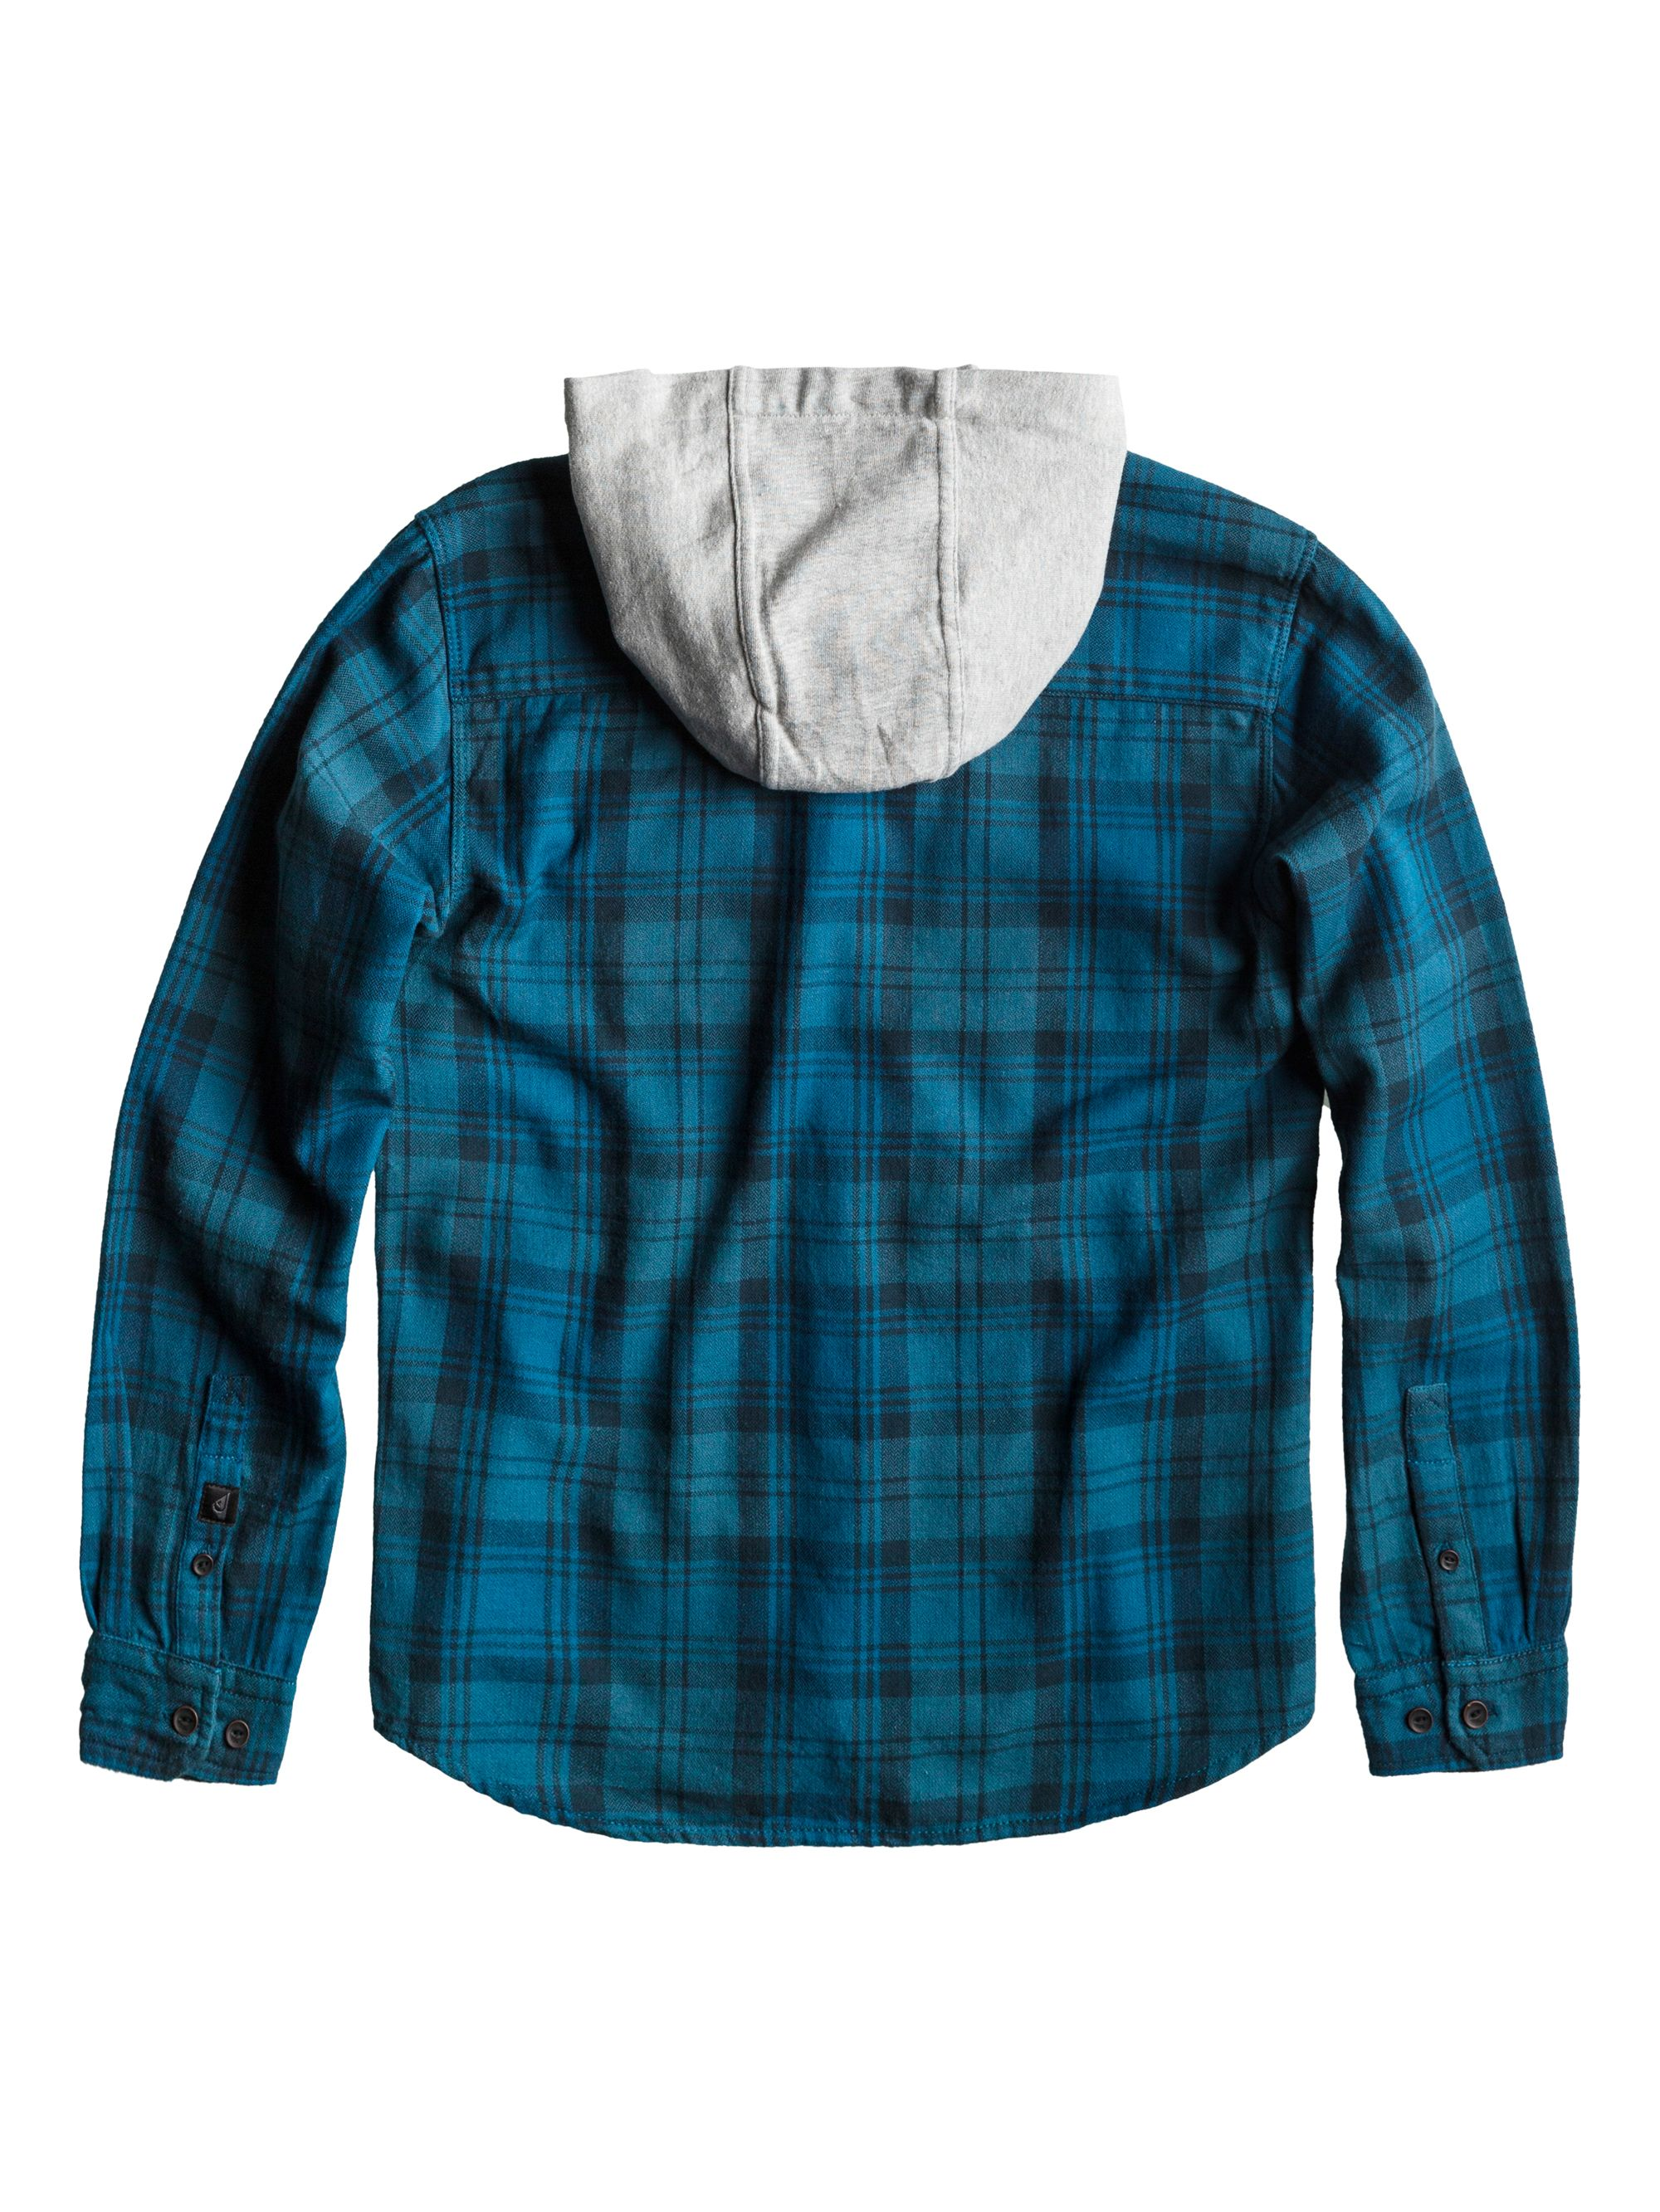 Boys wildhorn casual shirt